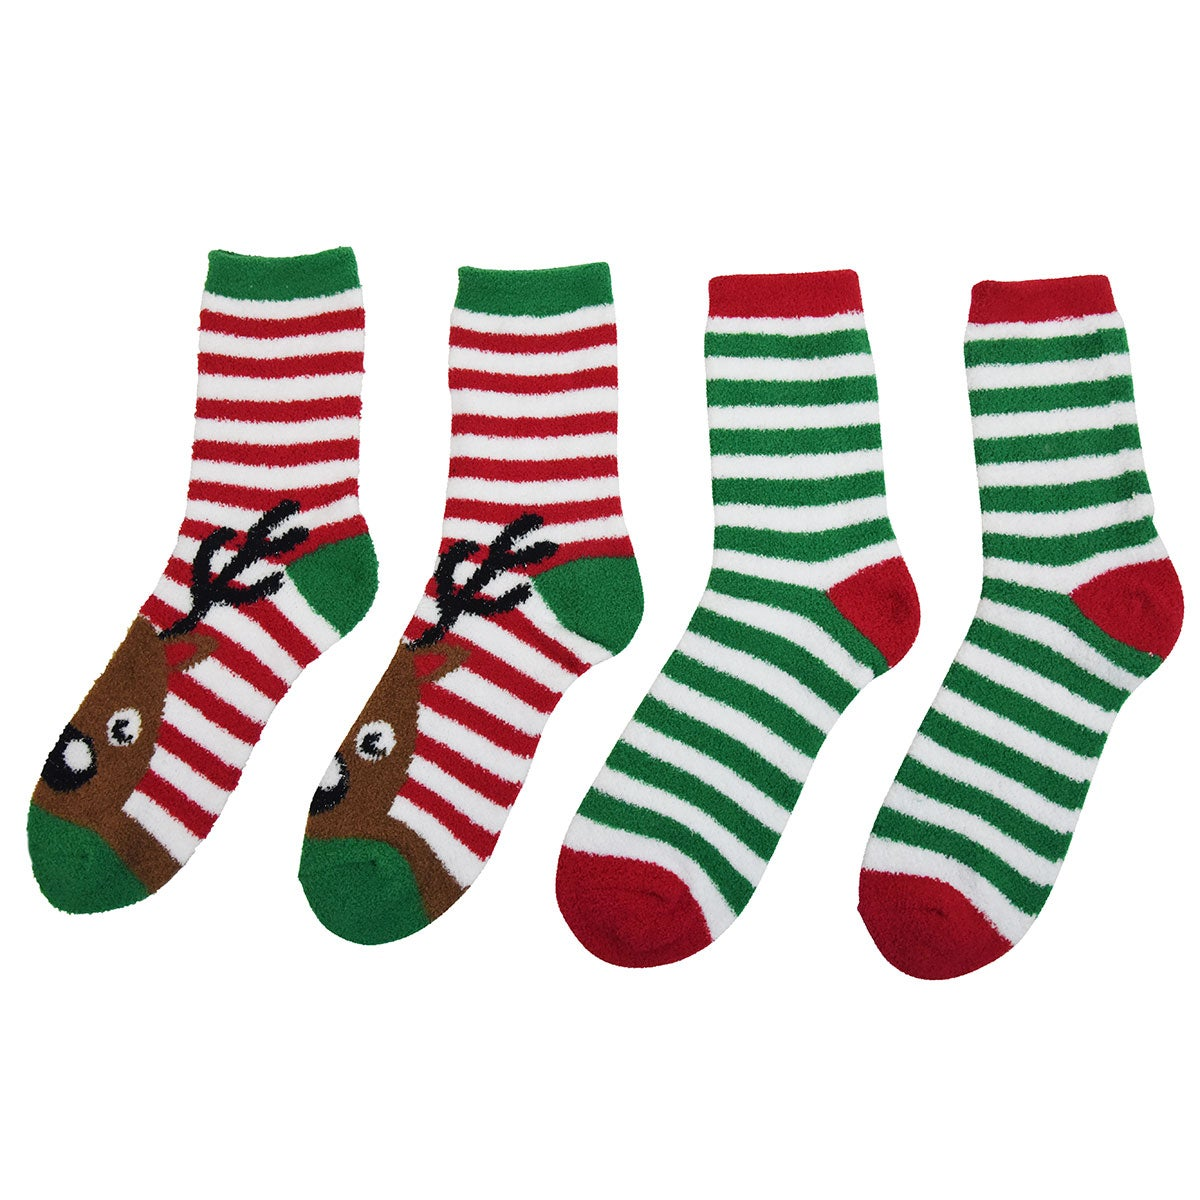 Capelli / GMA Accessories Holiday Reindeer 2-pack Velour Slipper Socks in Red Mix